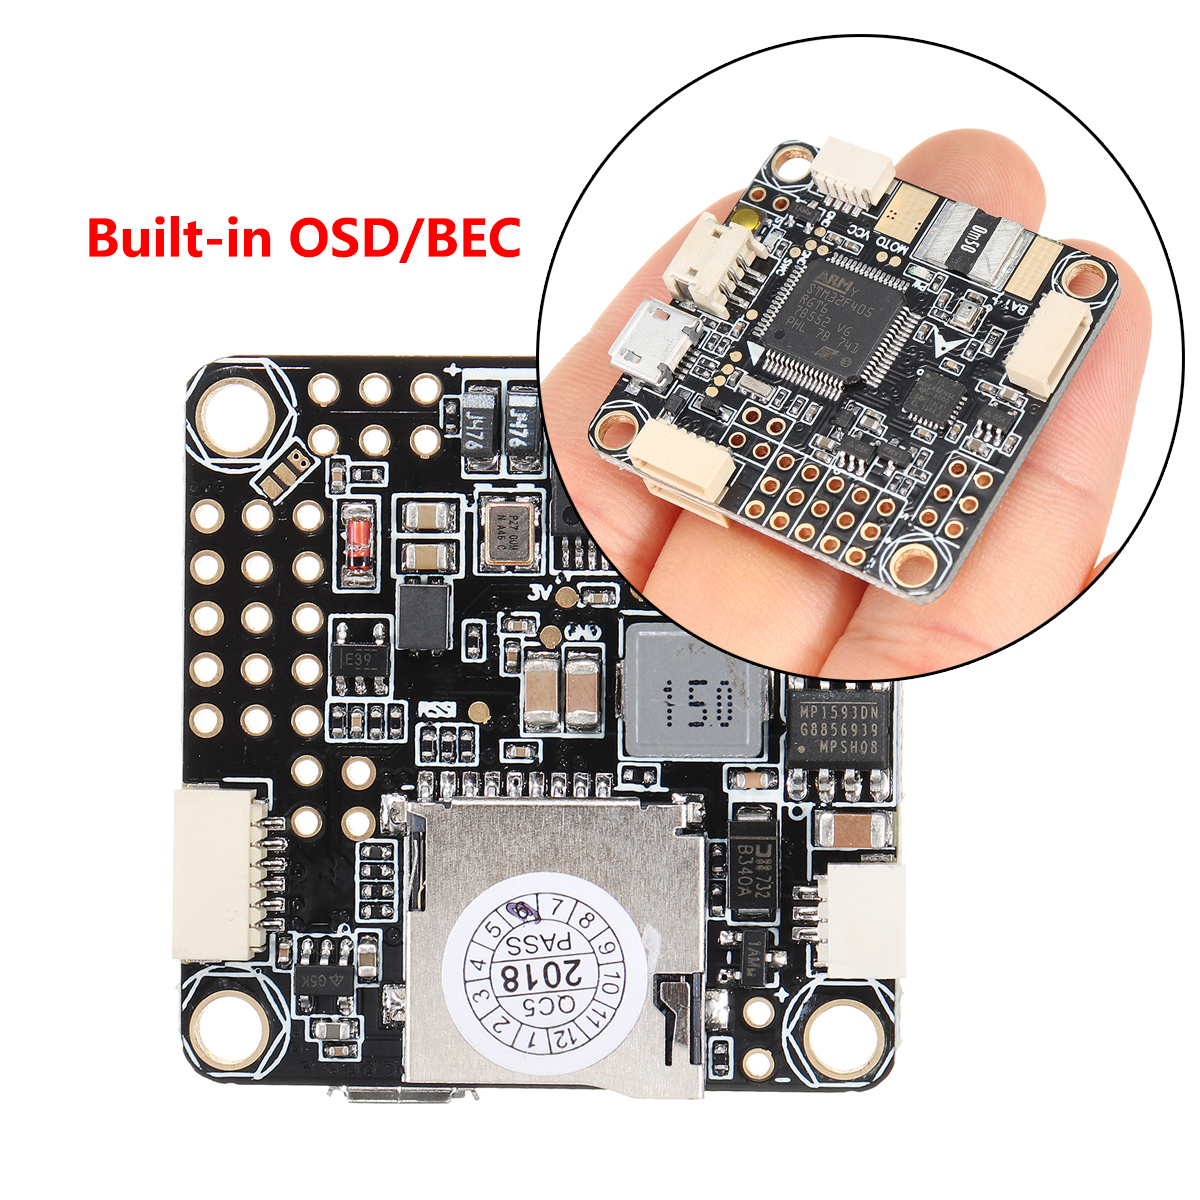 for Betaflight F4 PRO V2 Flight Controller Built-in OSD/BEC Drone Low Noise Stable for FPV Racing Upgraded Latest betaflight omnibus f4 pro v3 flight controller built in osd barometer sd blackbox 30 5x30 5mm for fpv quadcopter rc drone diy